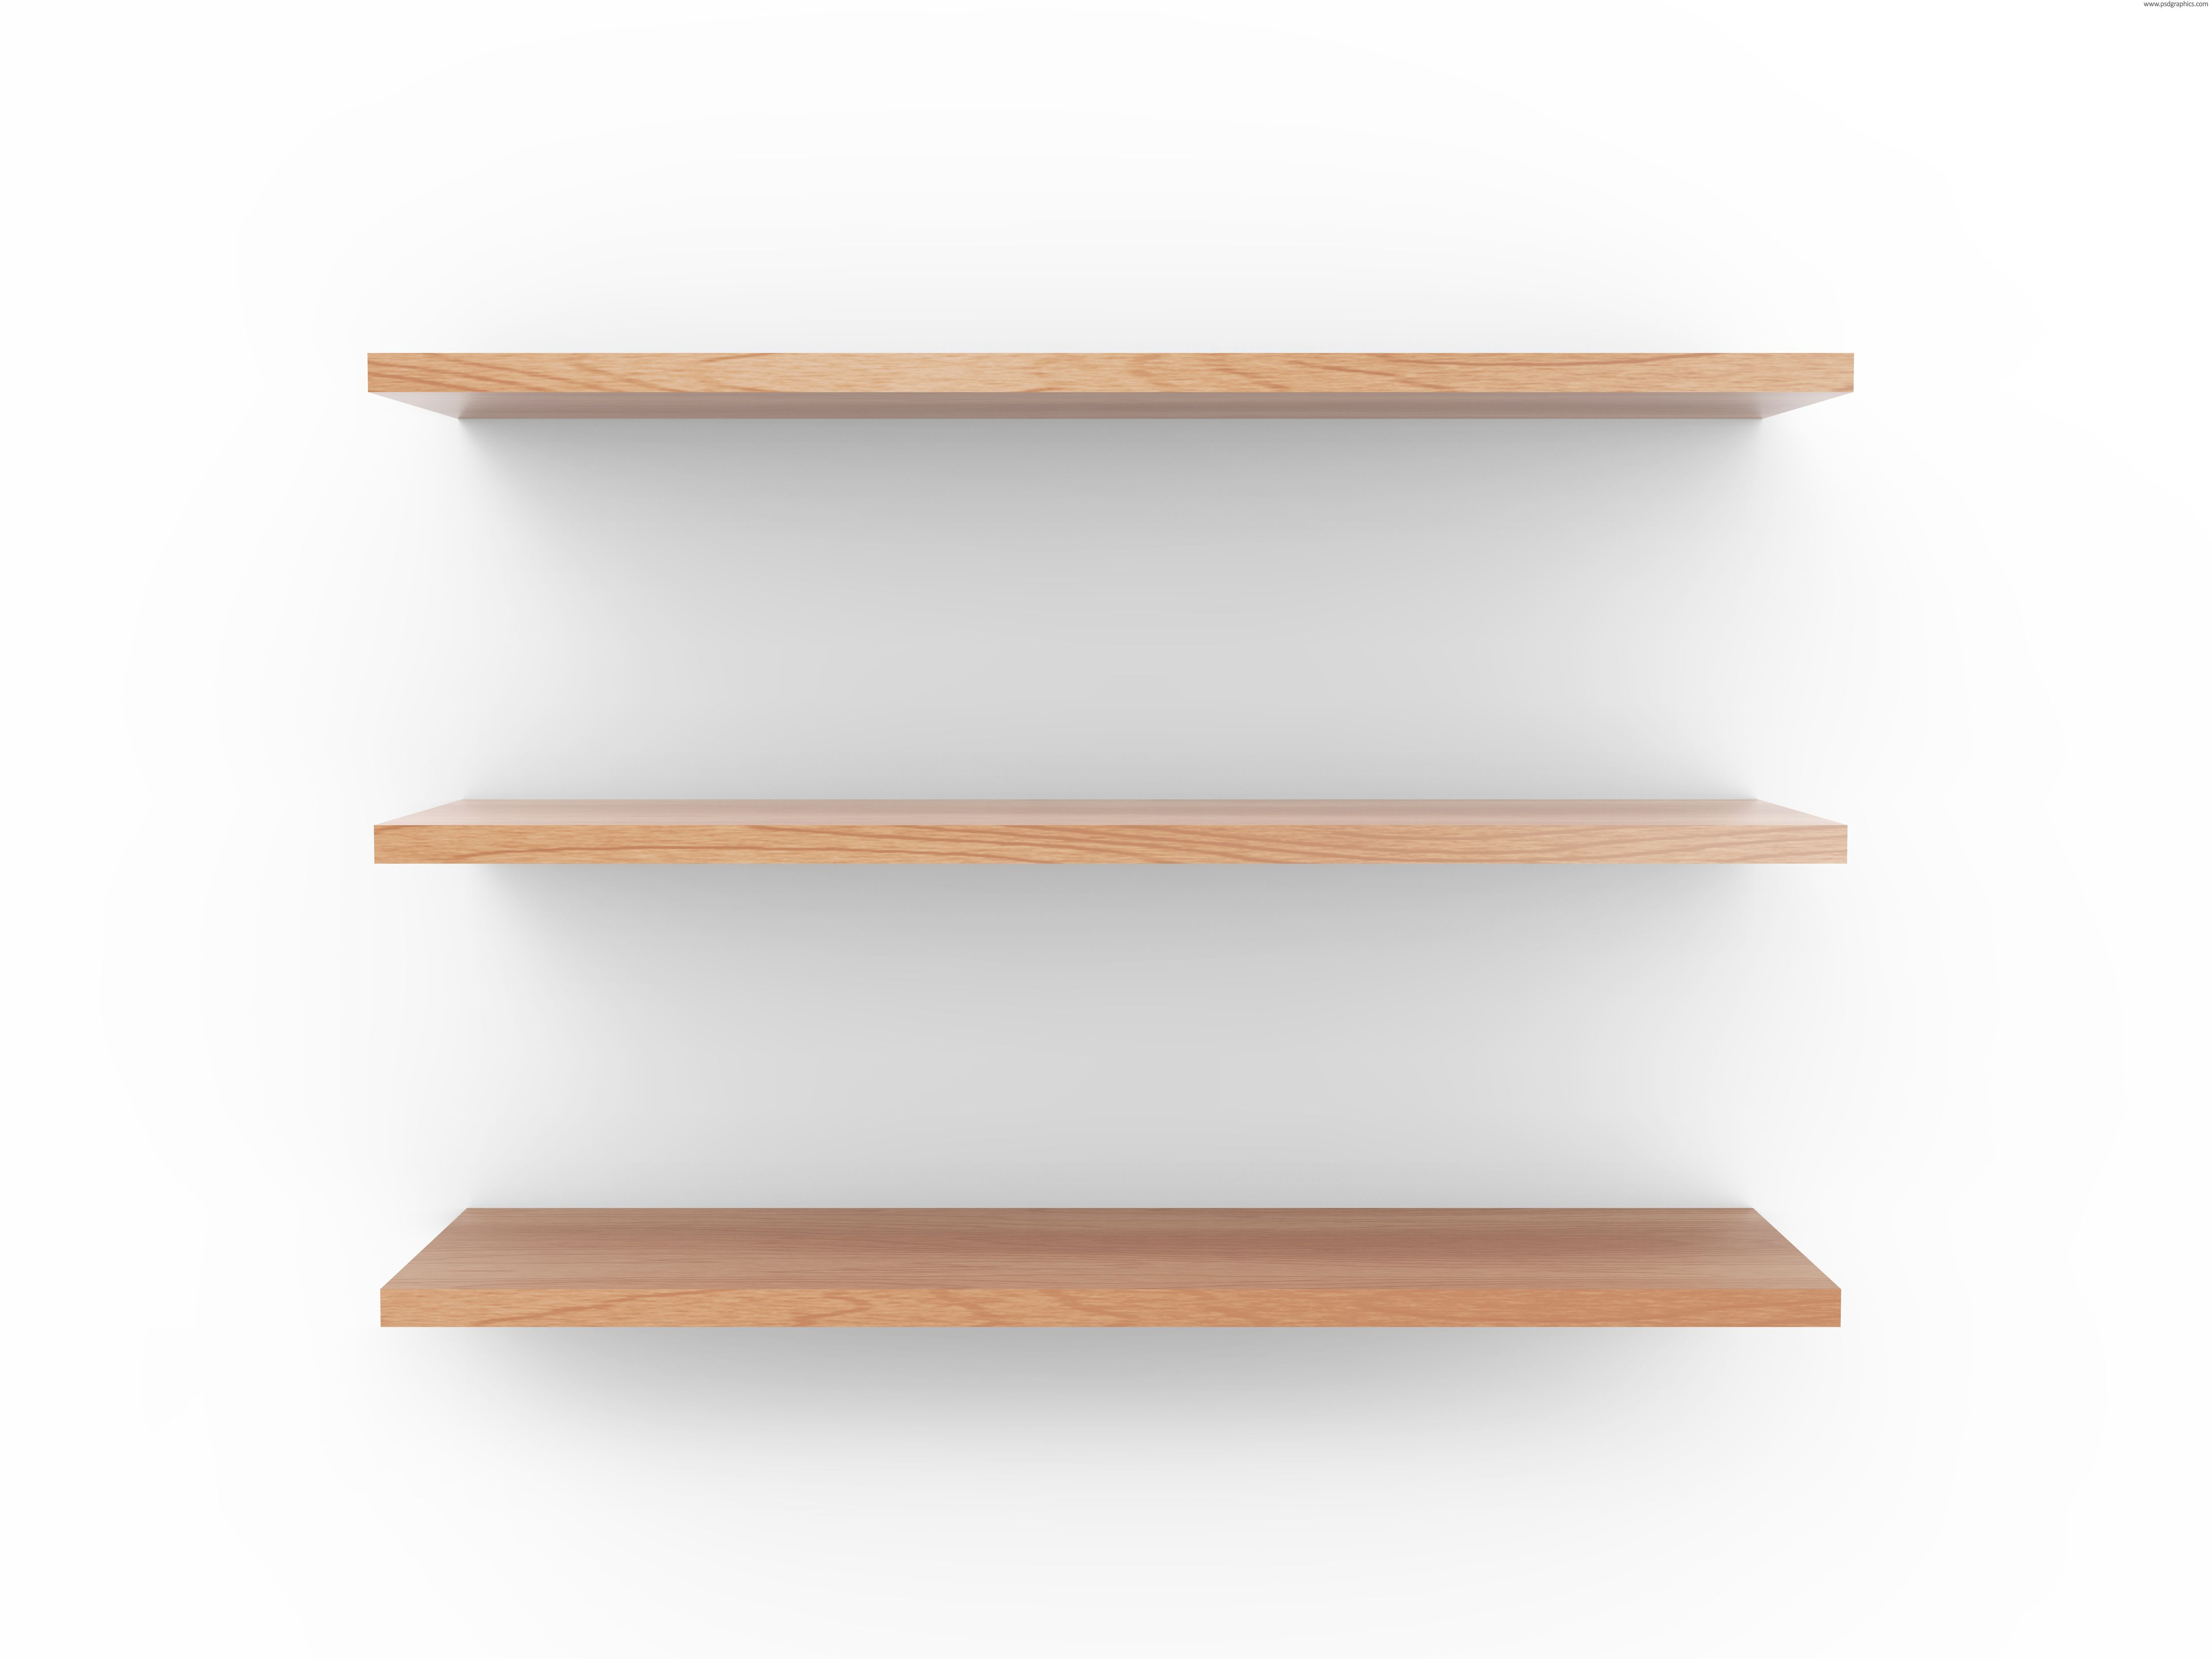 Wood Shelf Design | DIY Woodworking Projects